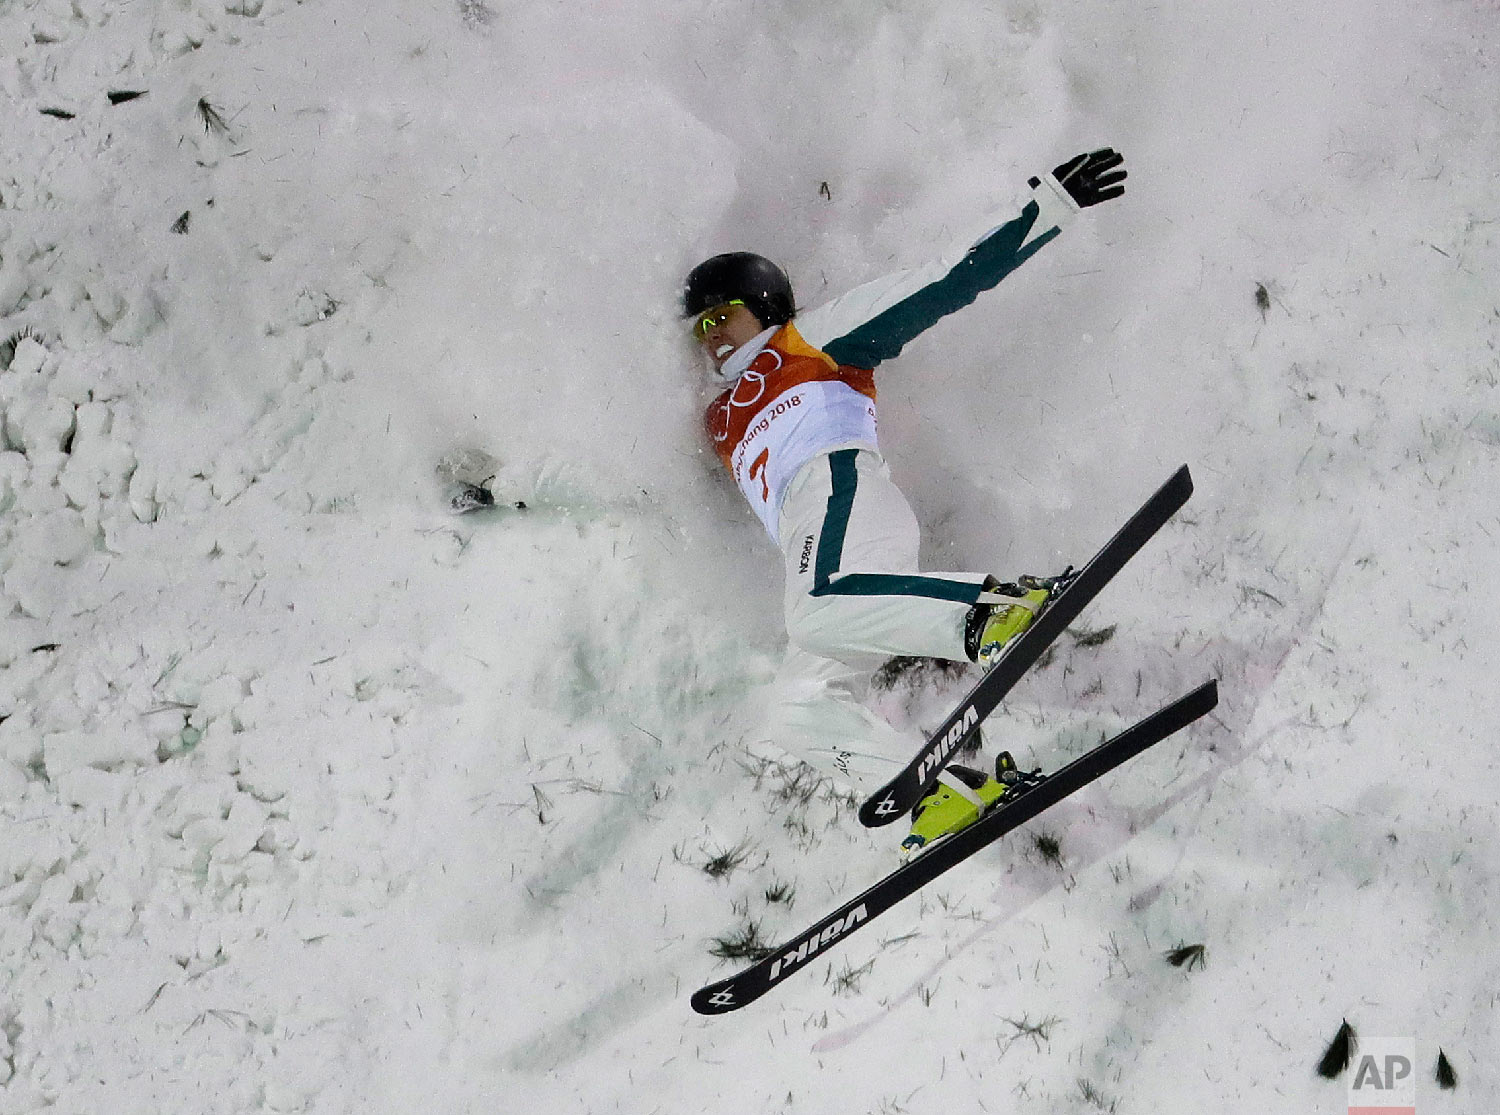 LauraPeel, of Australia, crashes during the women's freestyle aerial final at Phoenix Snow Park at the 2018 Winter Olympics in Pyeongchang, South Korea, Friday, Feb. 16, 2018. (AP Photo/Lee Jin-man)